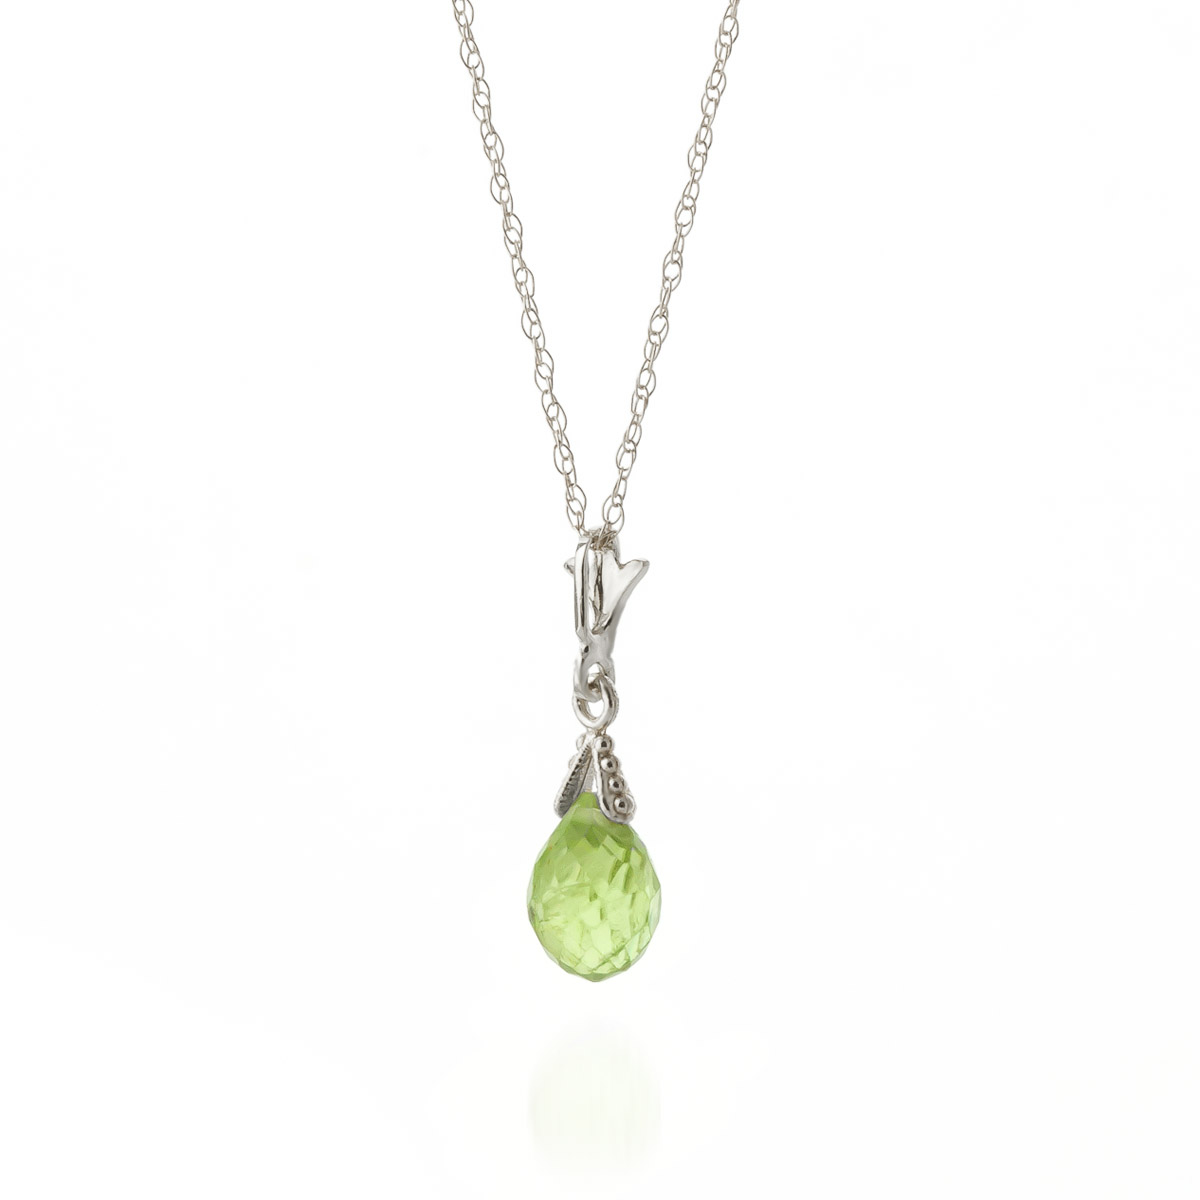 Peridot Droplet Briolette Pendant Necklace 2.5ct in 9ct White Gold